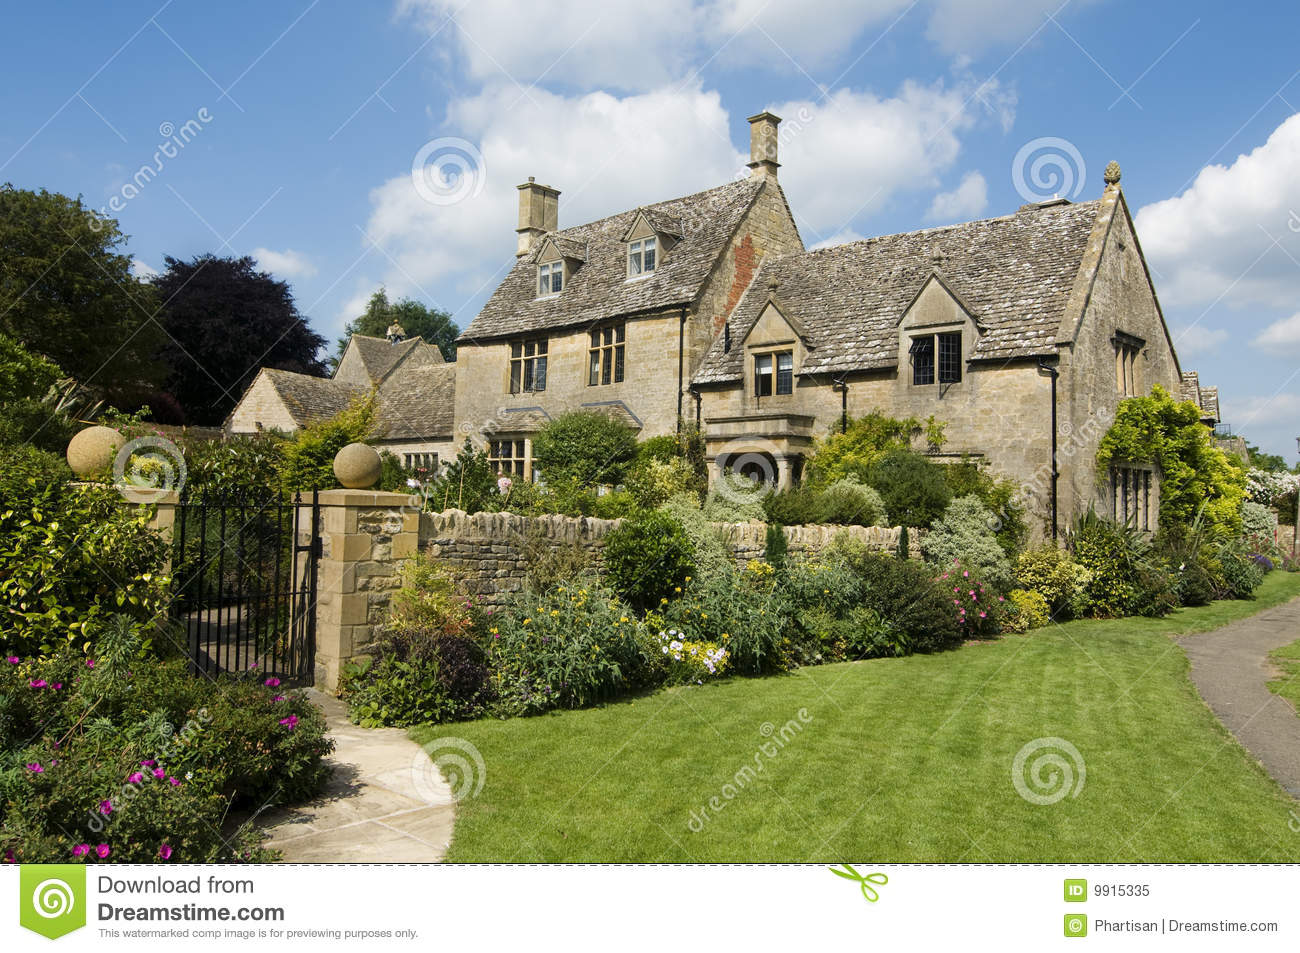 English country homes made from stone stock image image for Pics of country homes